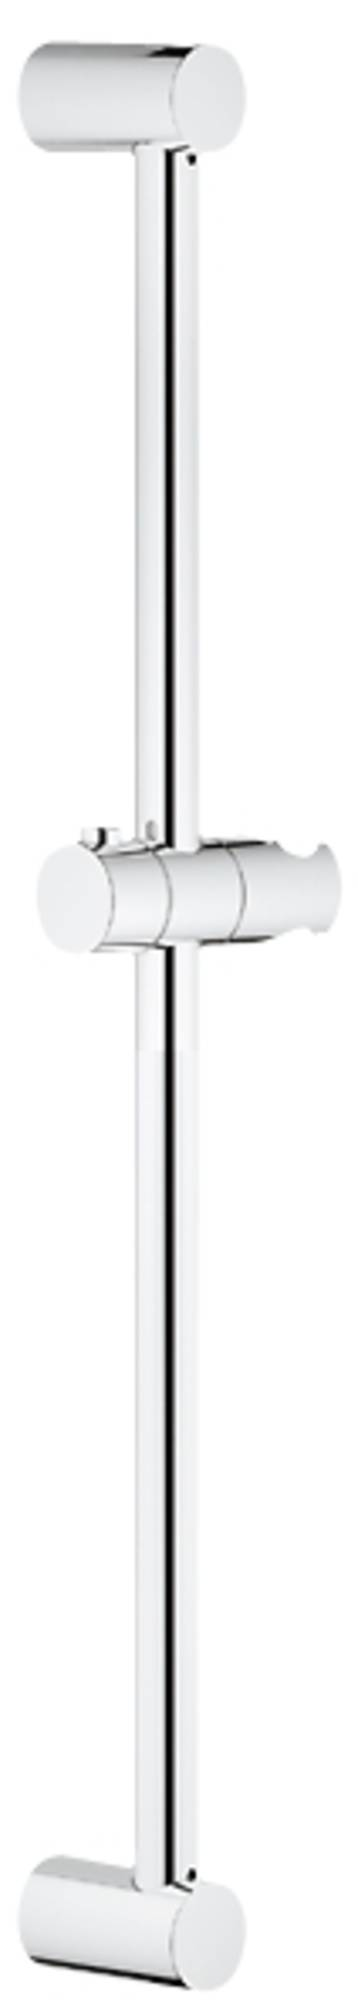 Grohe New Tempesta glijstang 27521000